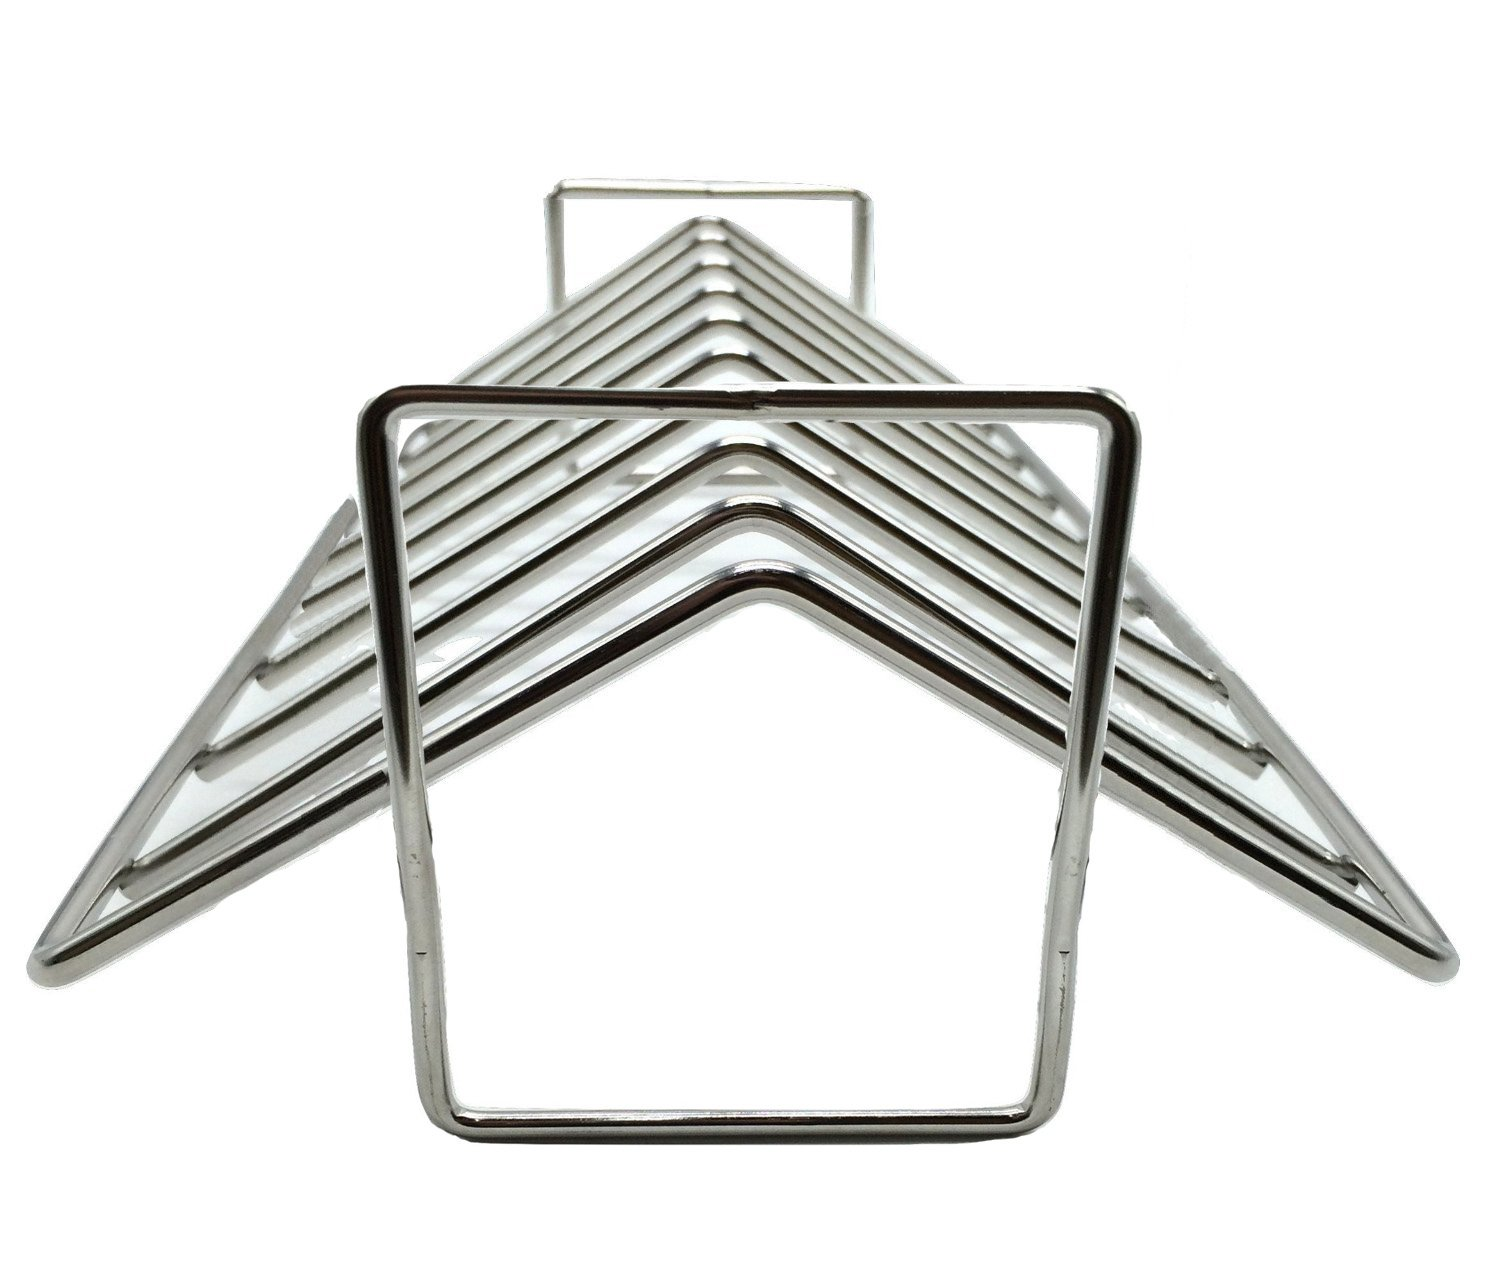 BBQ funland Stainless Steel Rib and Roasting Rack. For work on Big Green Egg, Kamado Joe, Vision, Grill Dome, Primo grills and all indoor ovens